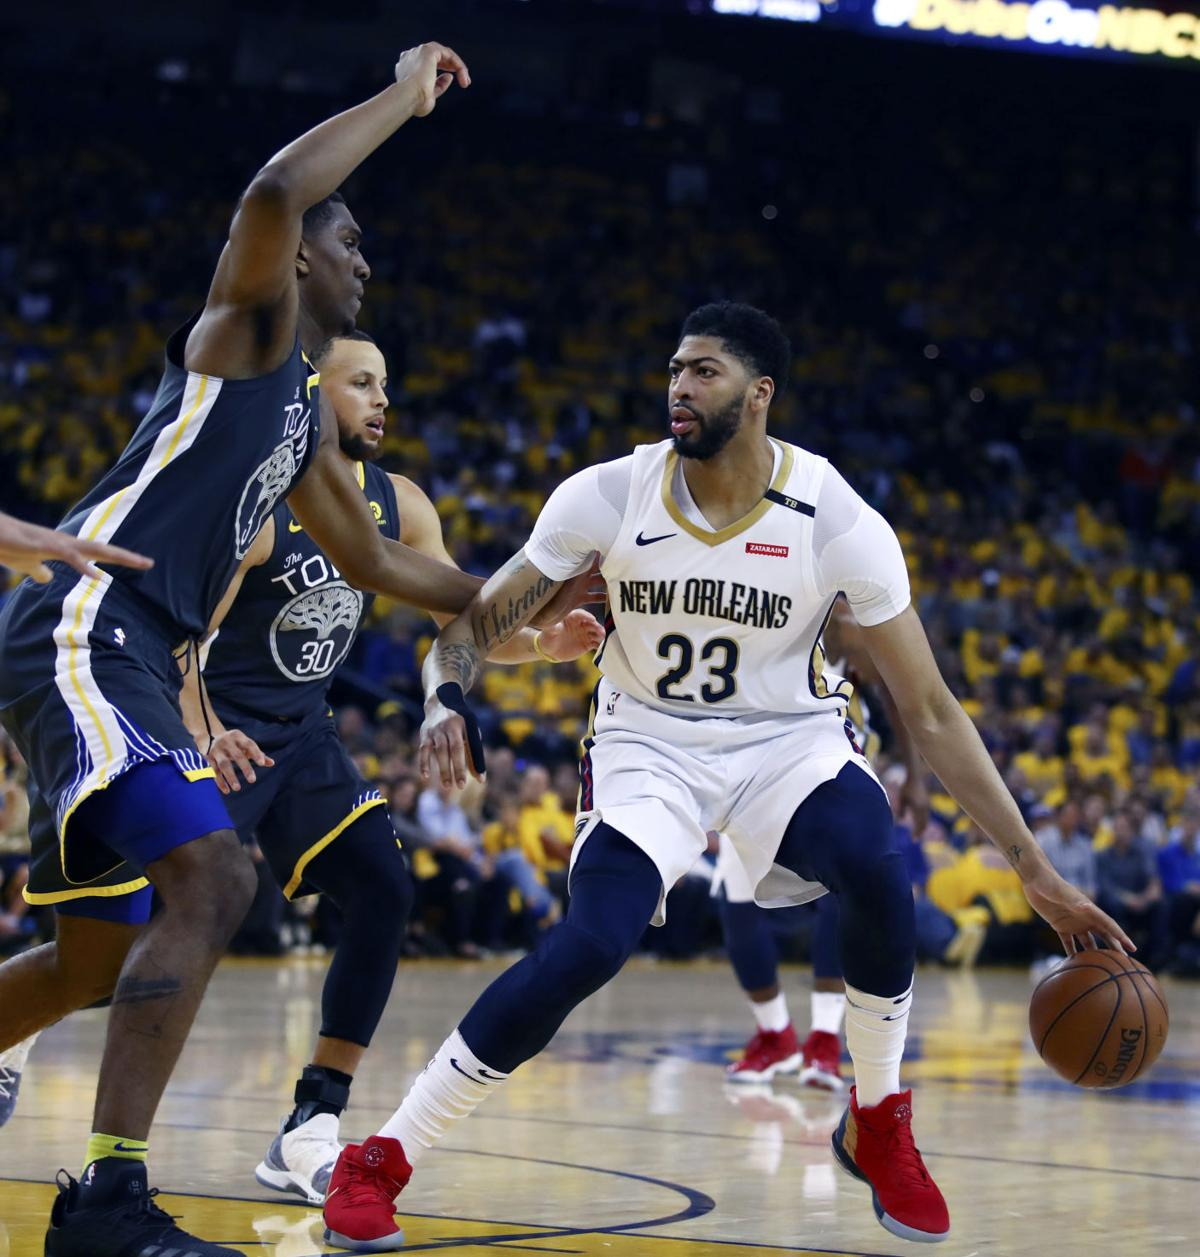 Warriors Vs Pelicans Game 3 Live Stream Free: Pelicans Vs. Warriors: 3 Takeaways From Game 2; What's